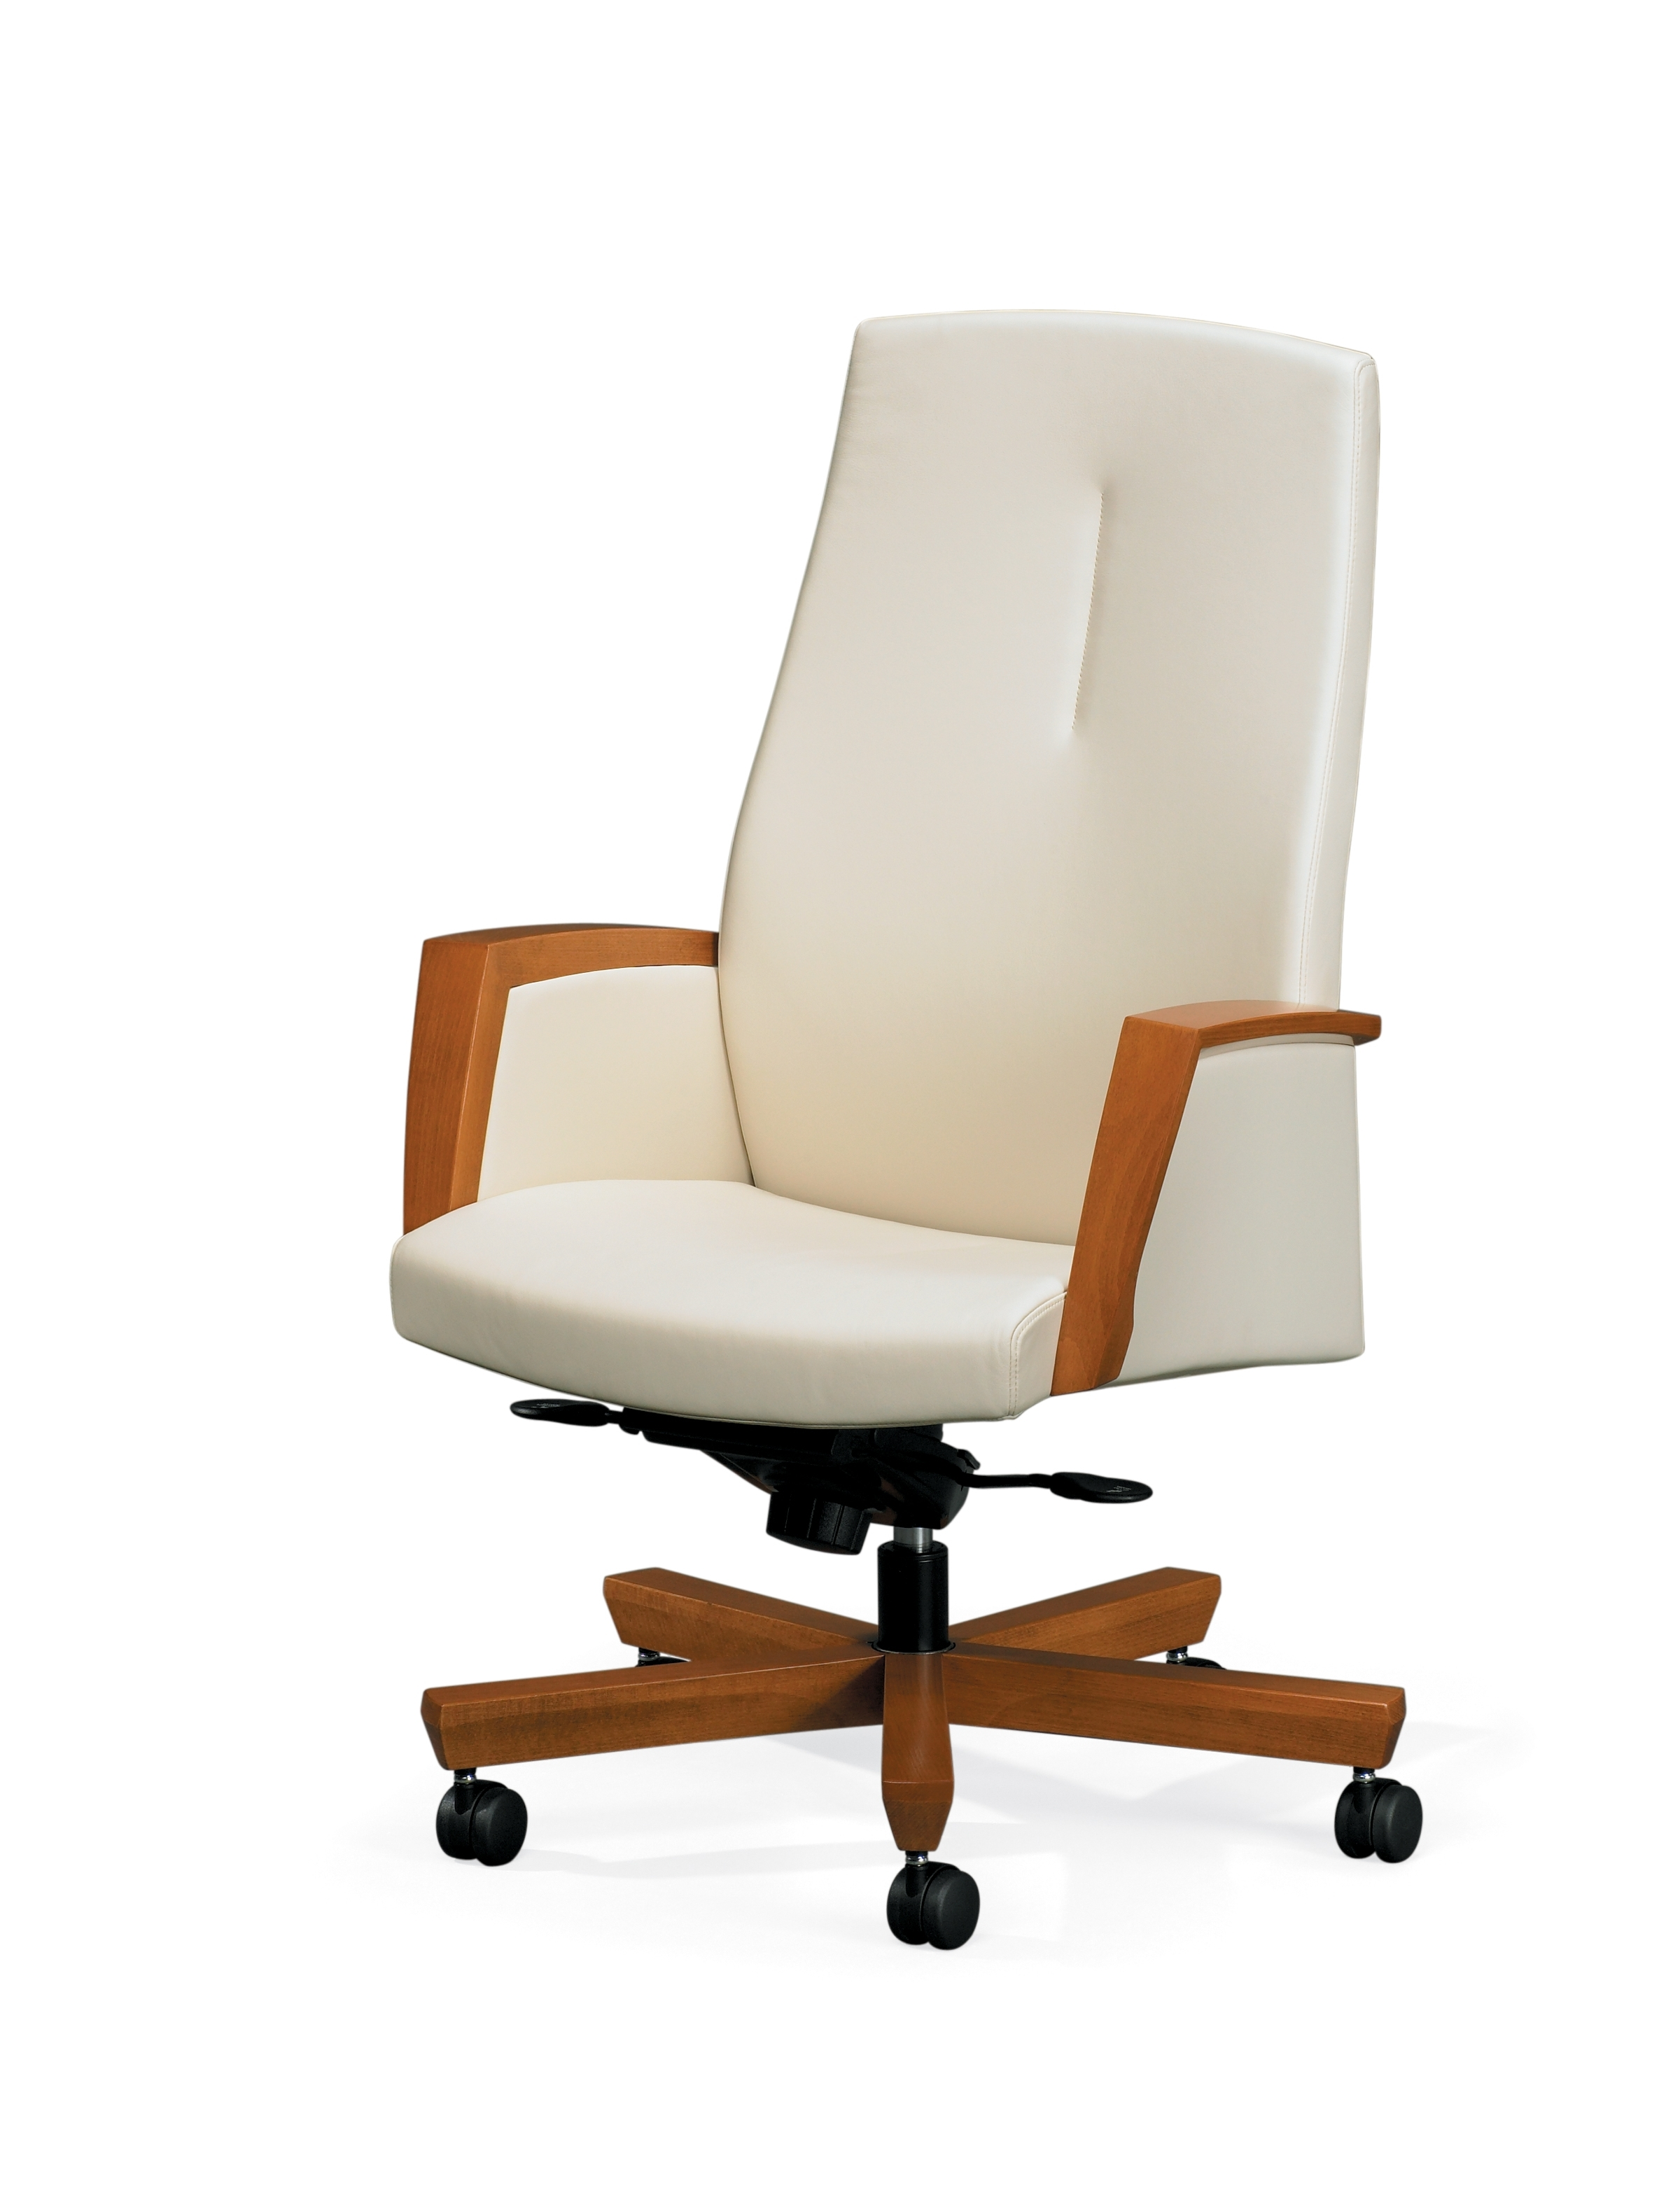 Widely Used Paoli Diverge Office Chair – Contemporay And Transitional Seating Pertaining To Leather Wood Executive Office Chairs (View 3 of 20)